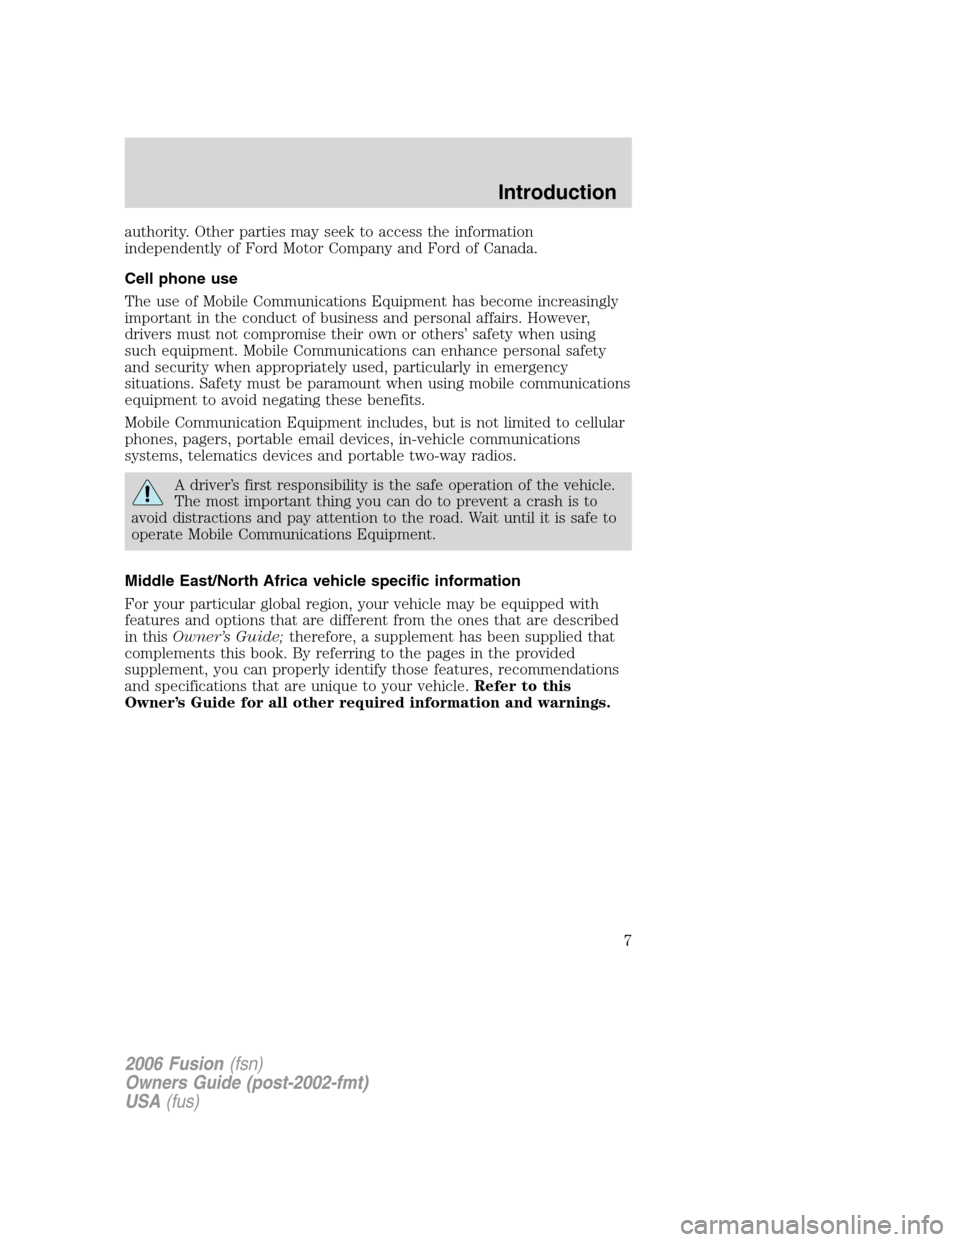 FORD FUSION (AMERICAS) 2006 1.G Owners Manual, Page 7